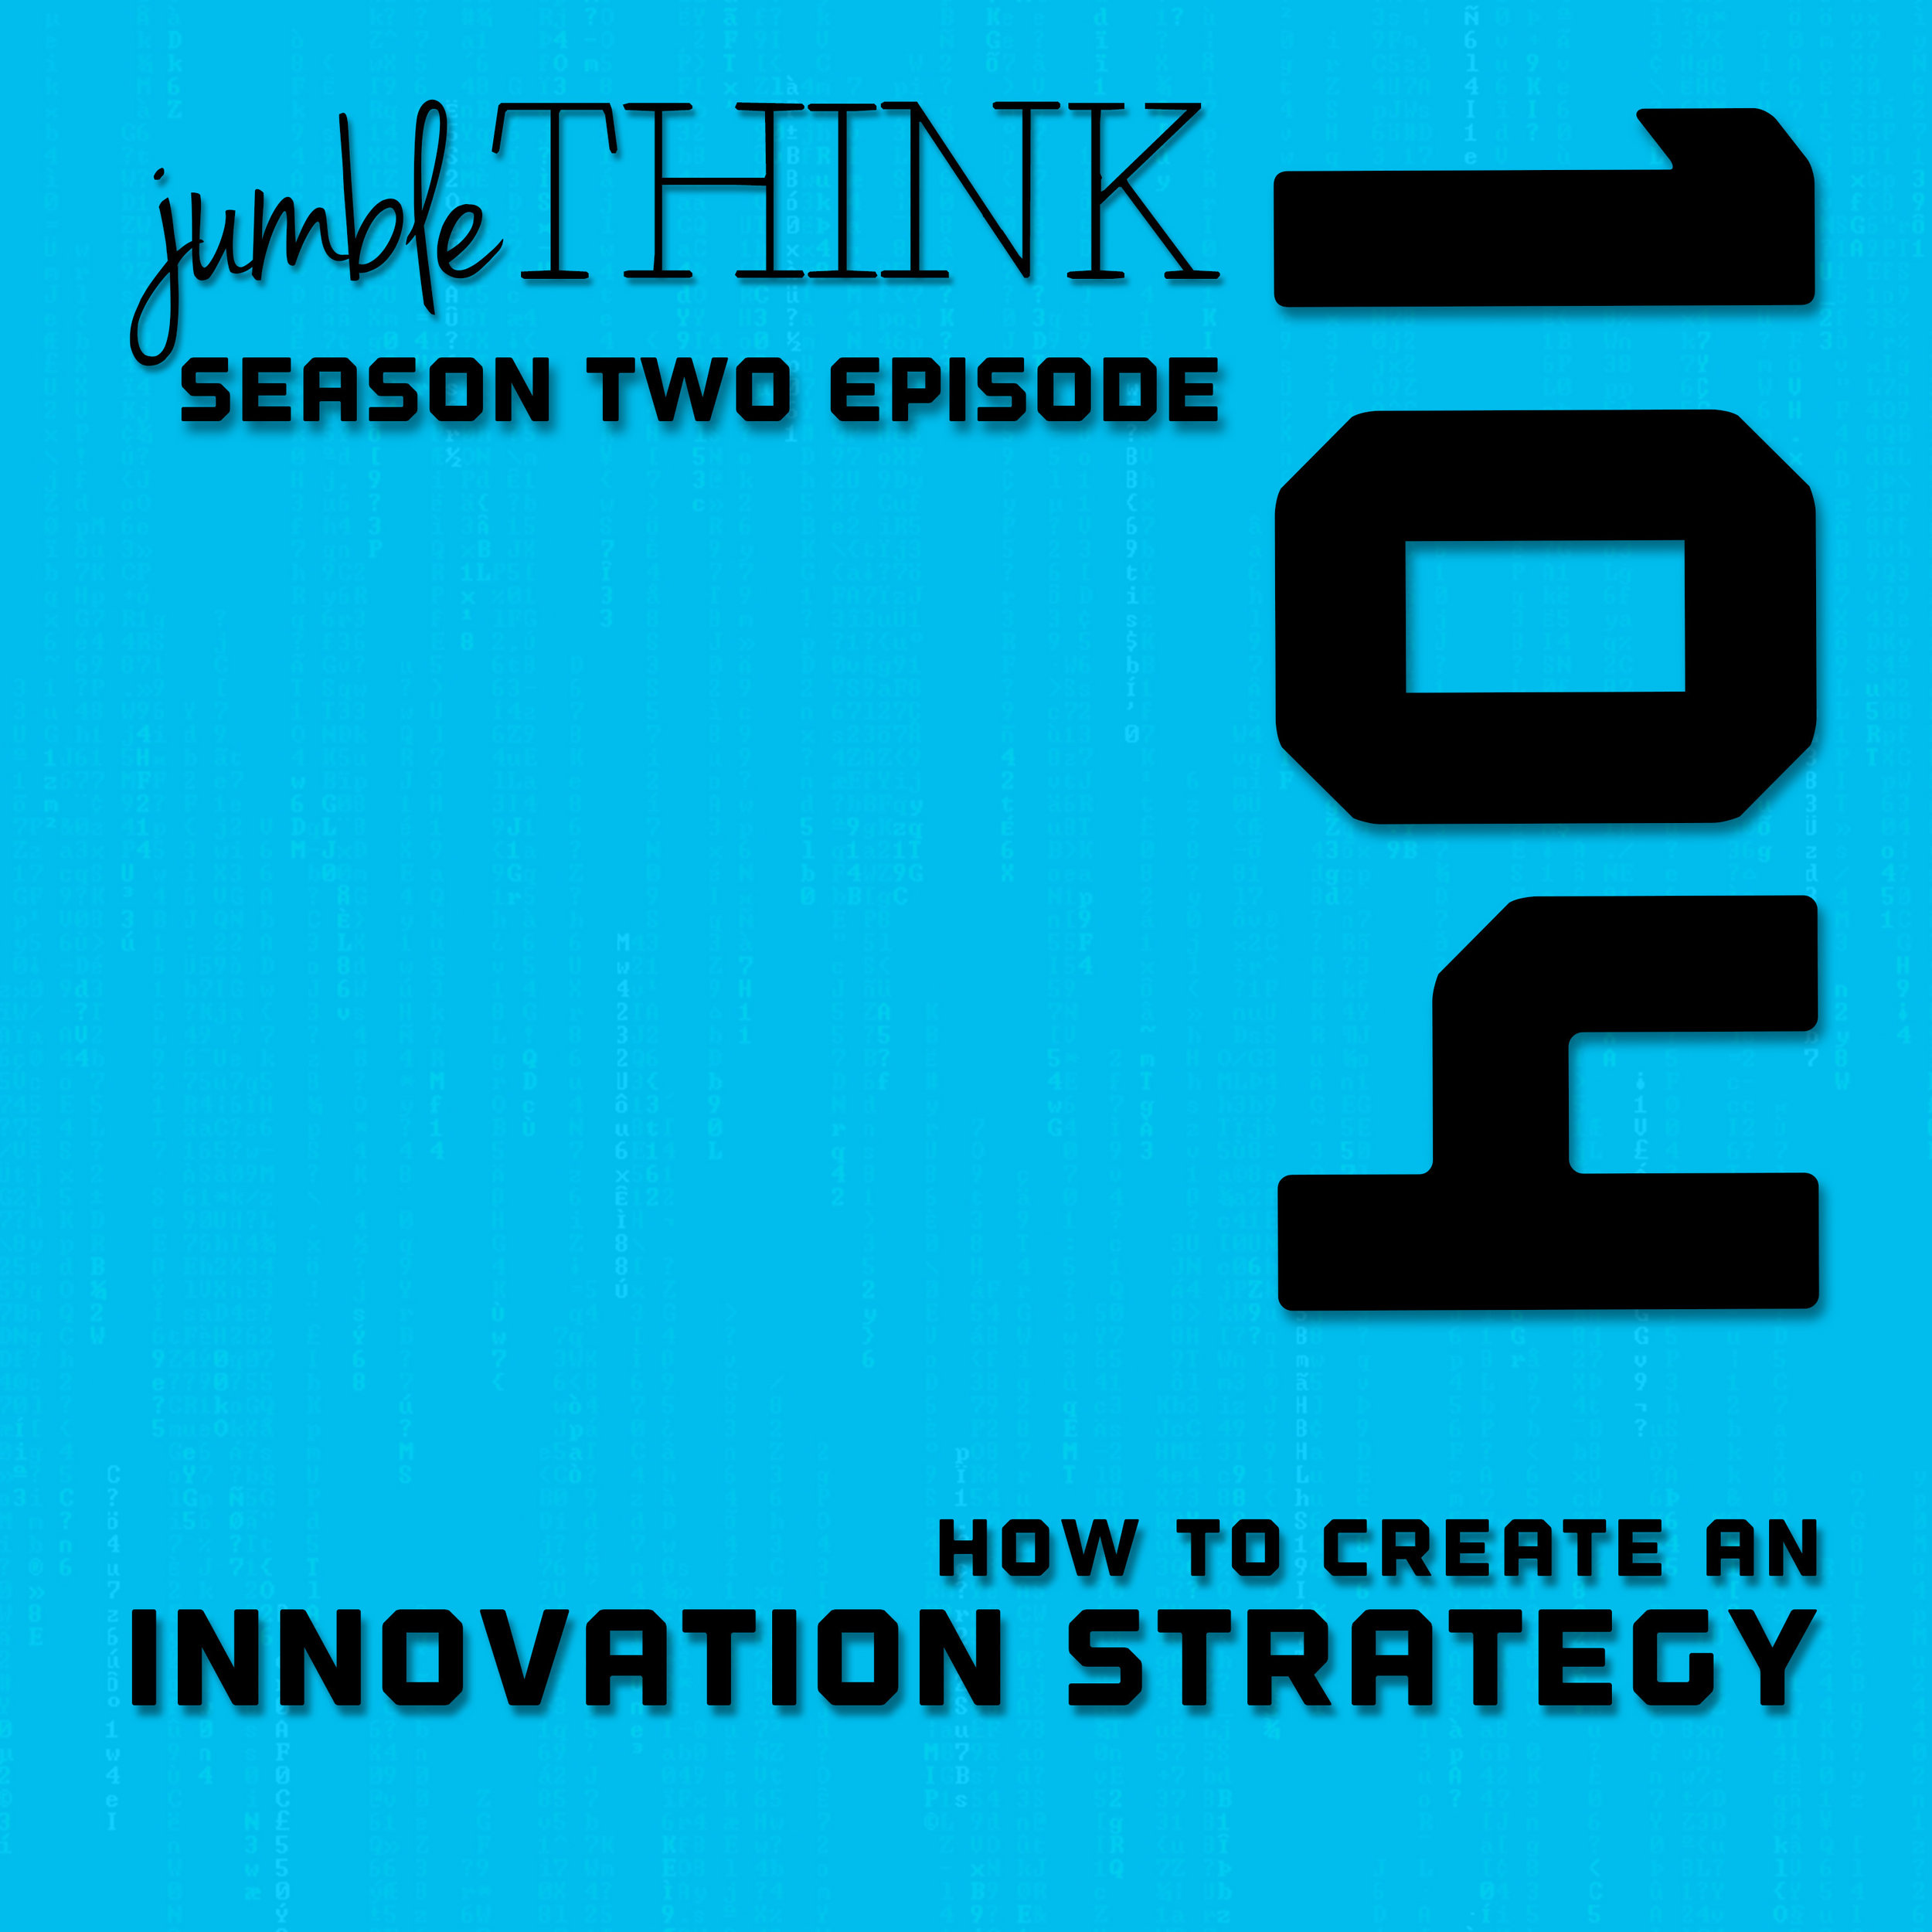 How to create an Innovation Strategy